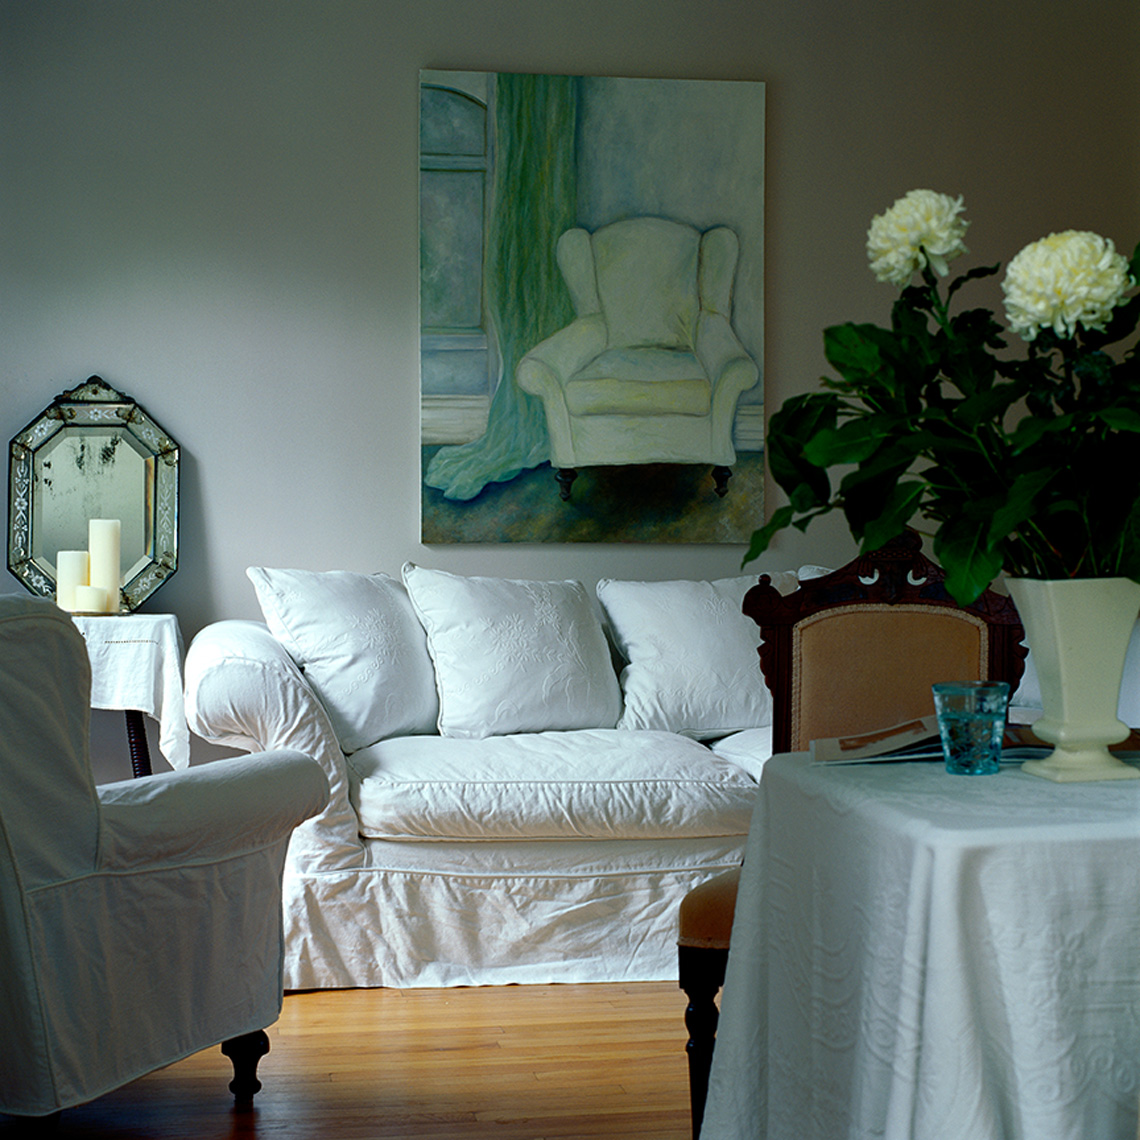 living room with white shabby chic sofa and primitive painting